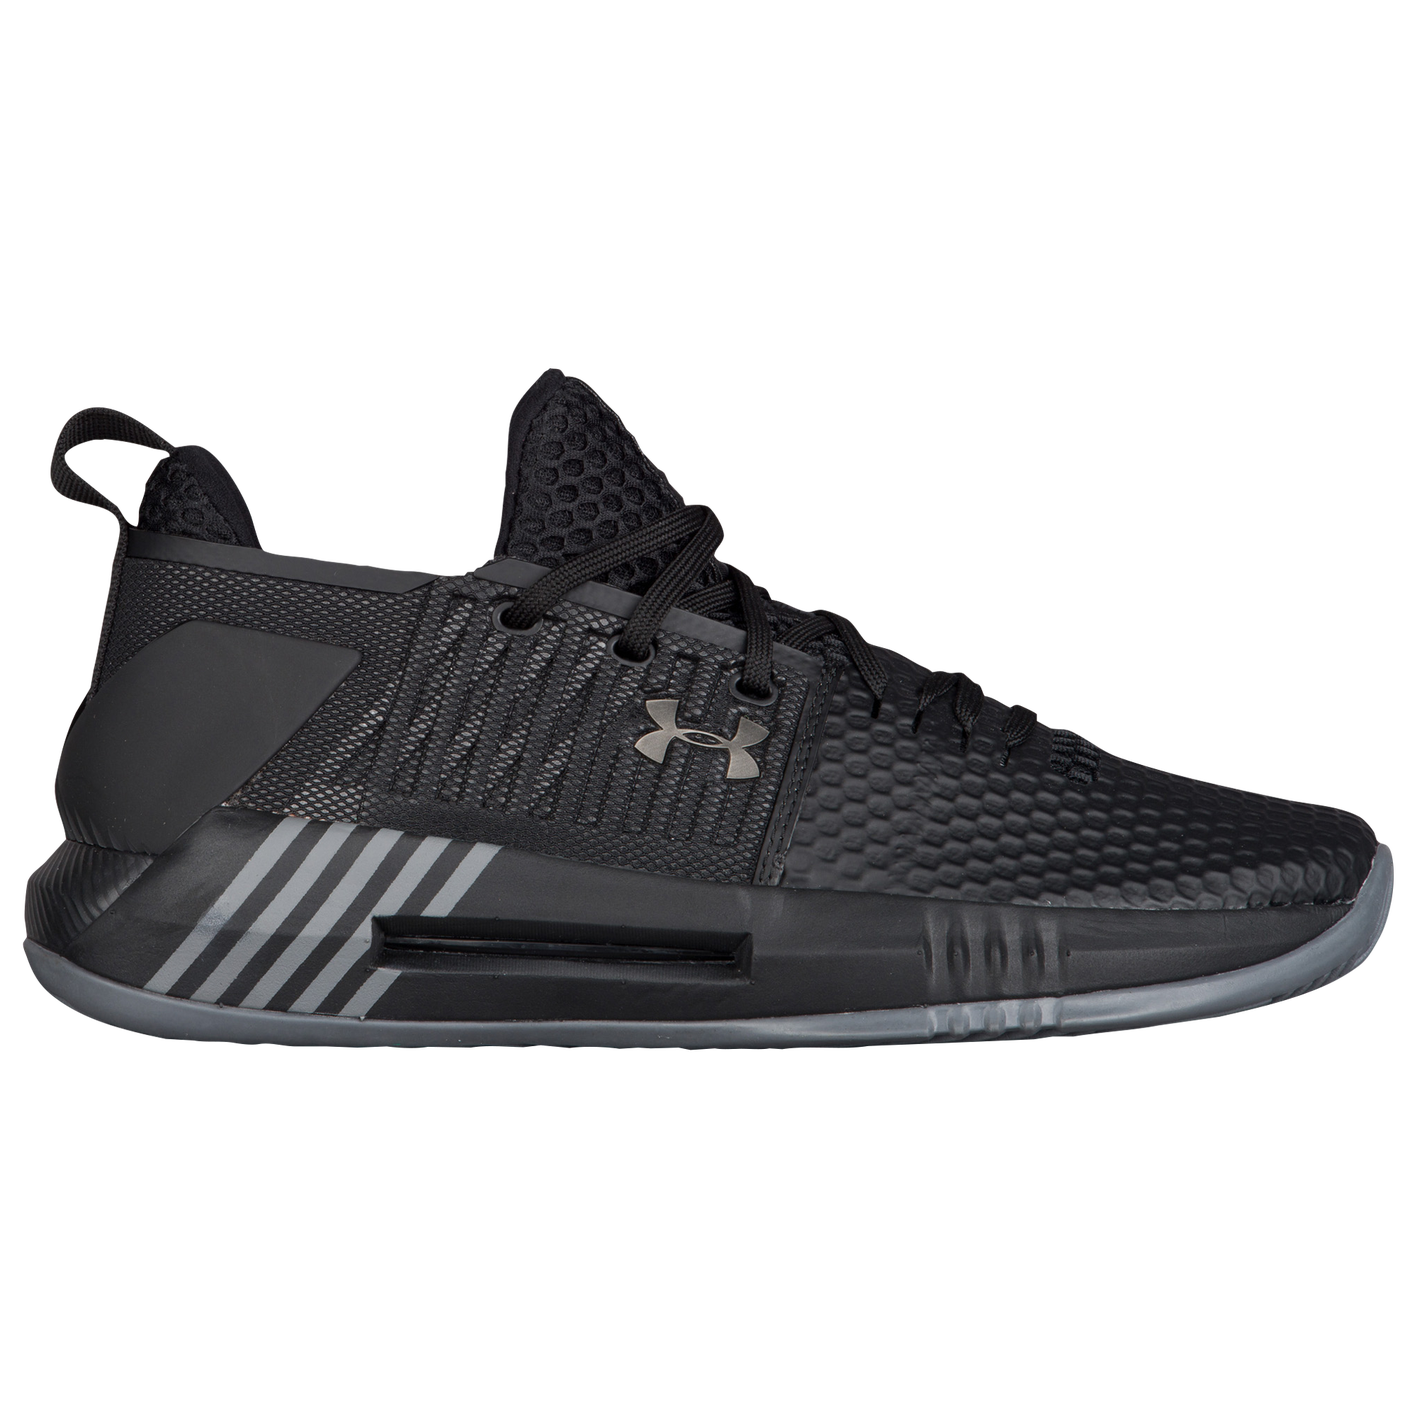 f9315fde2ce8 Under Armour Drive 4 Low - Men s - Basketball - Shoes - Black Black